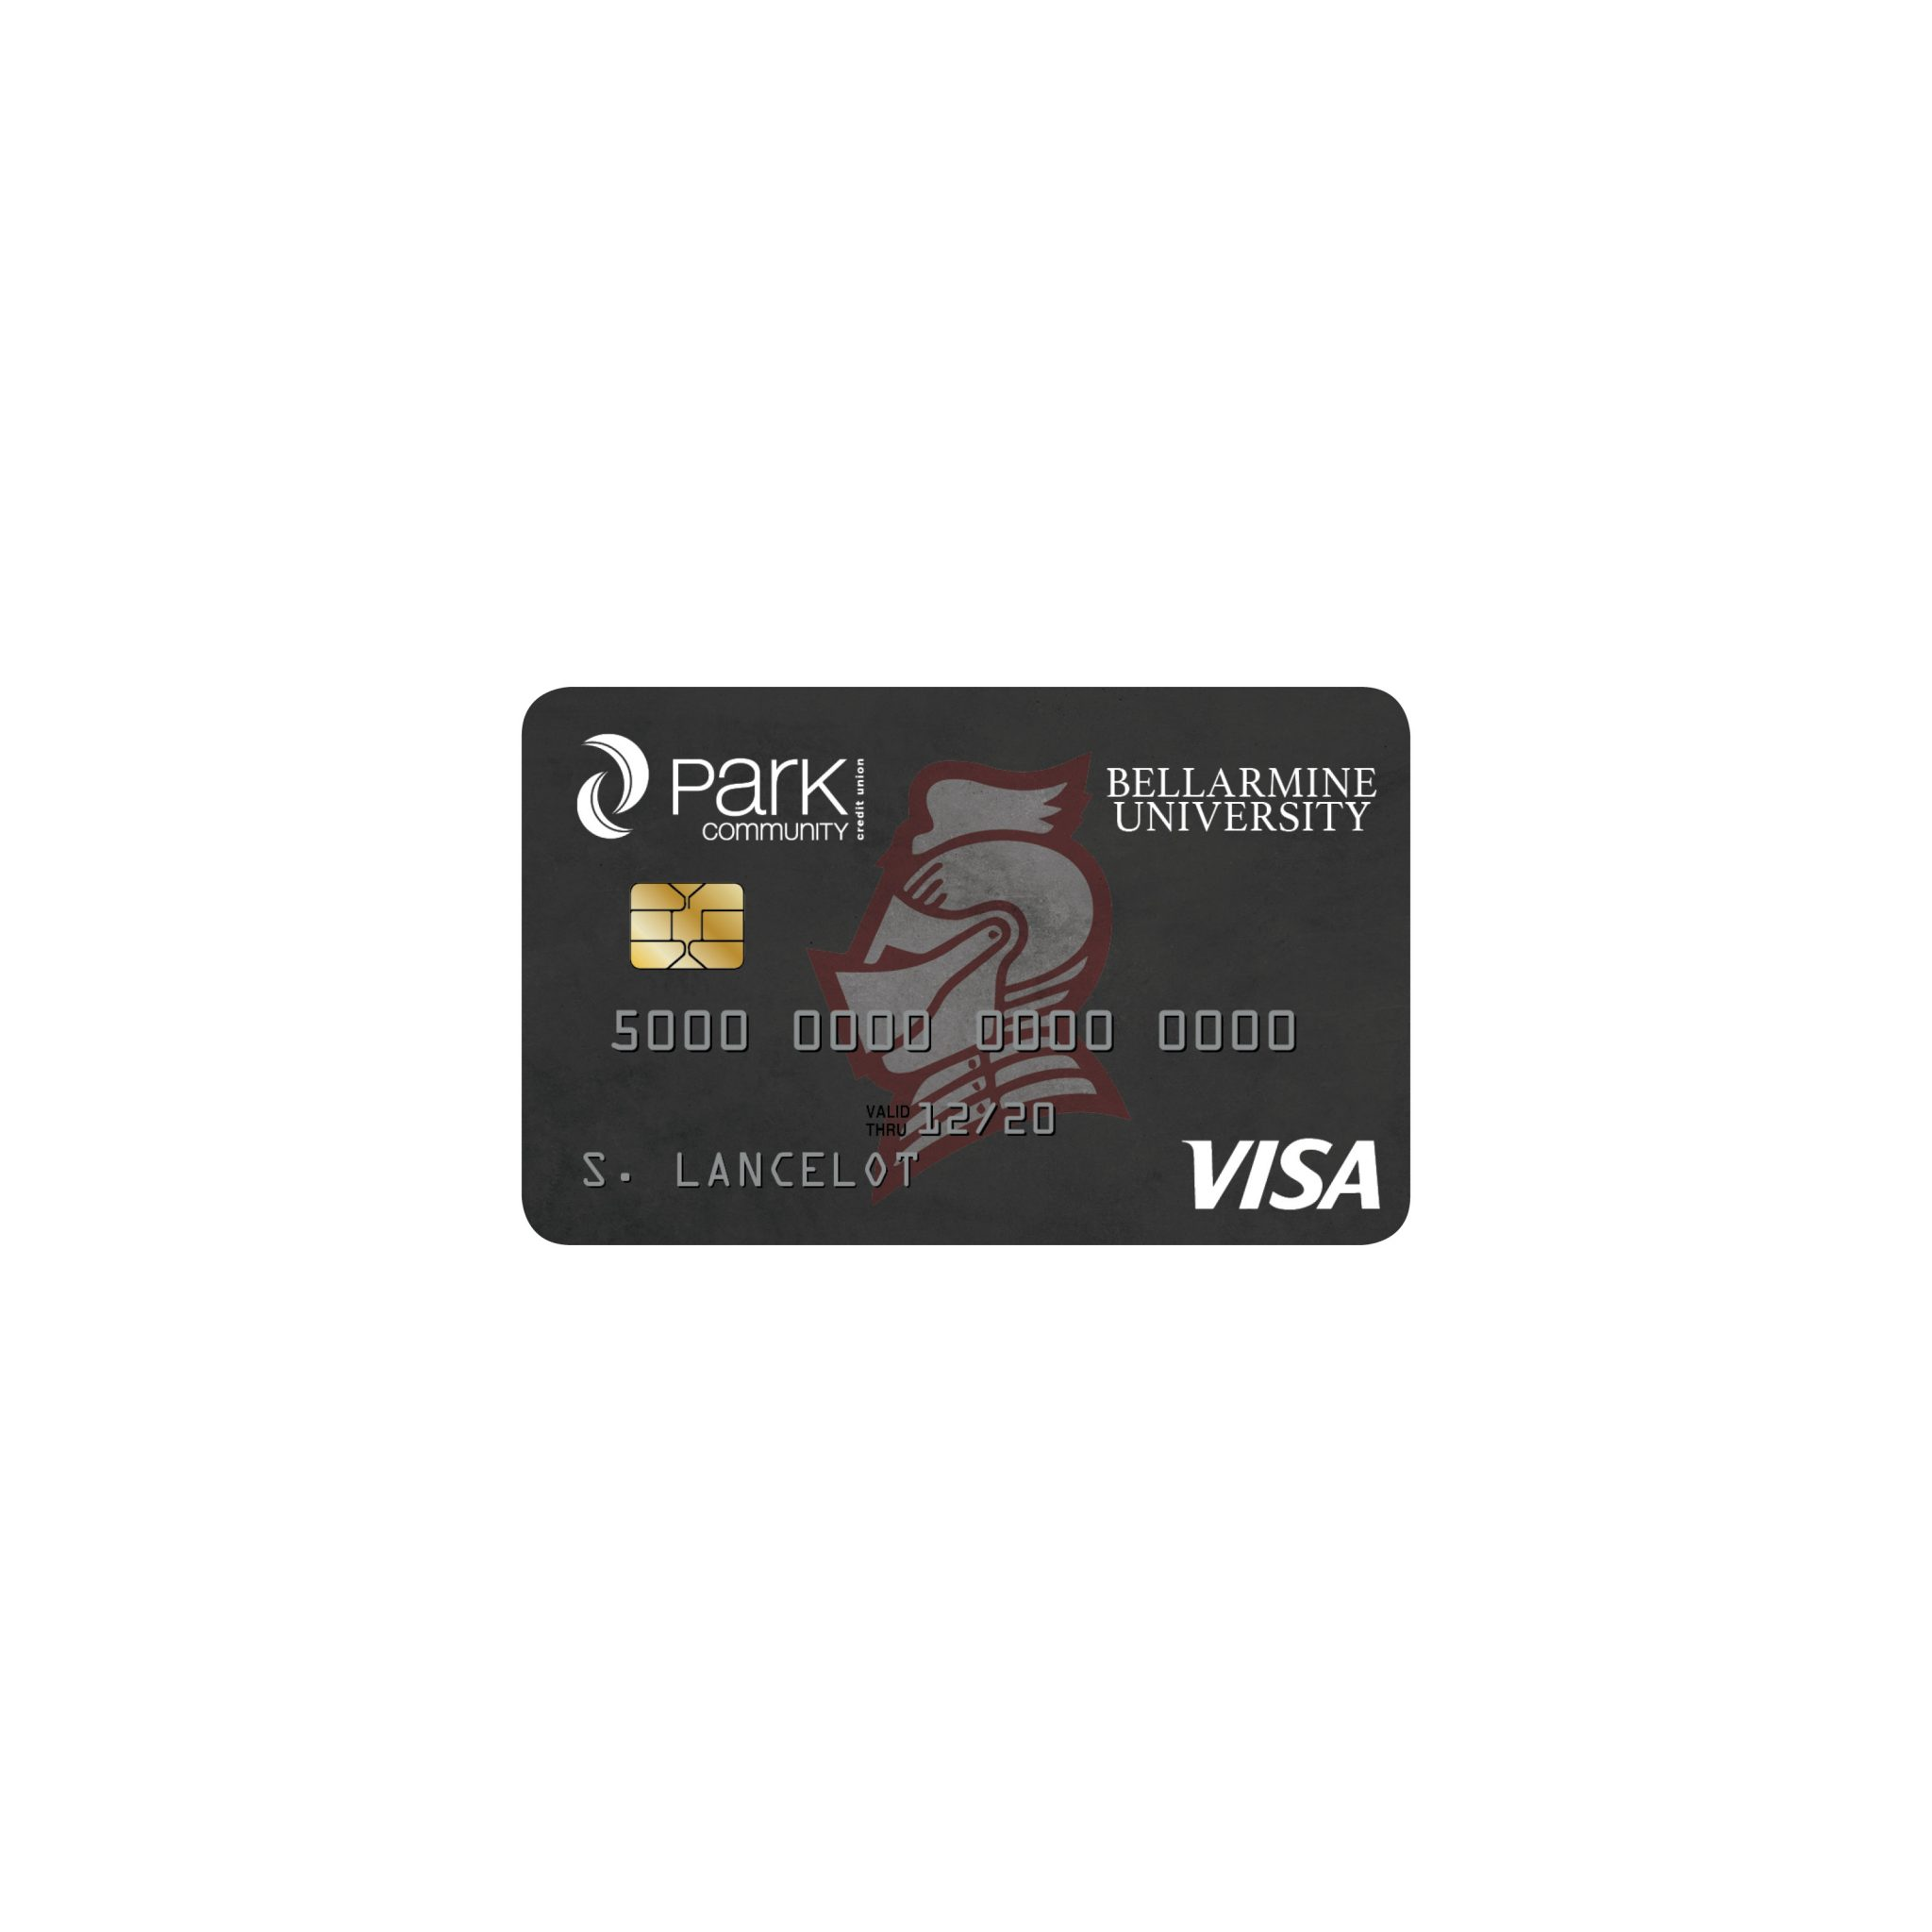 Illustration of cobranded Bellarmine university credit card design